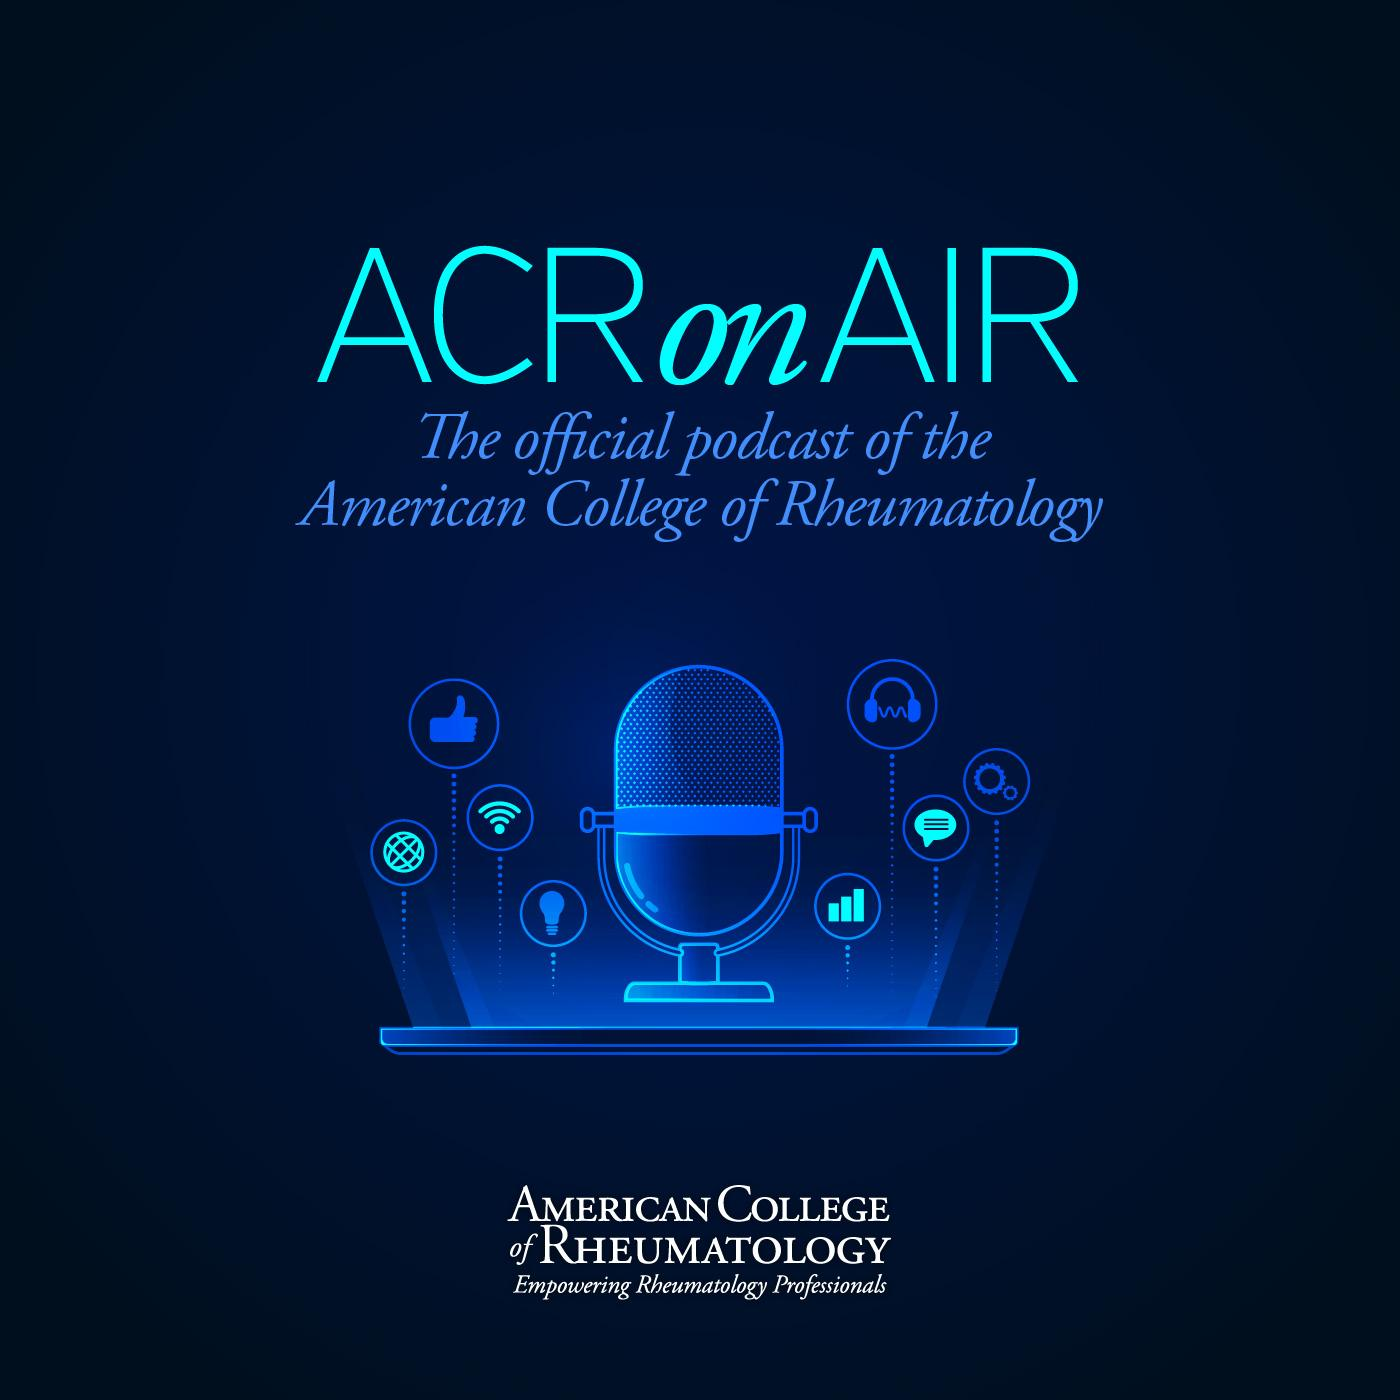 ACR on Air (podcast) - American College of Rheumatology